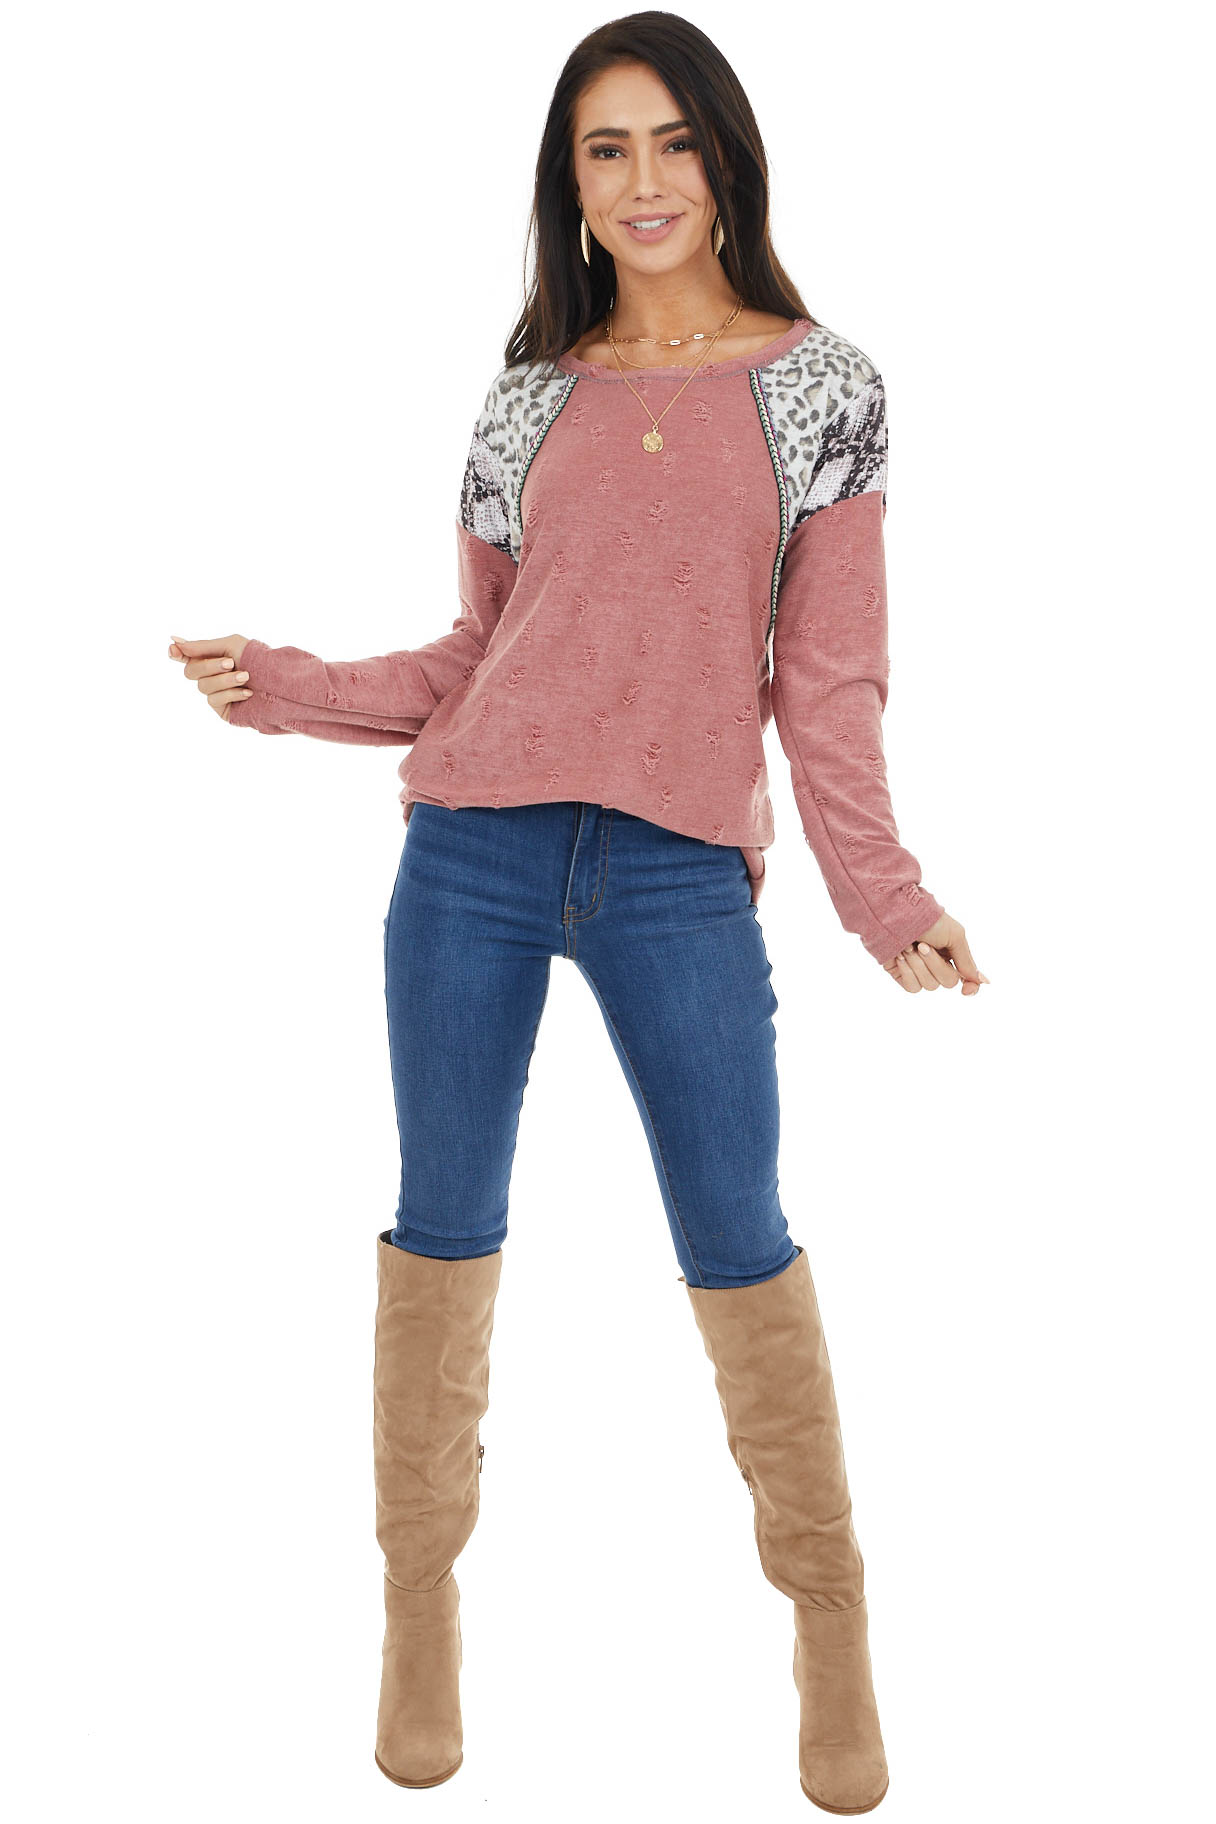 Marsala Distressed Knit Top with Leopard and Snake Print